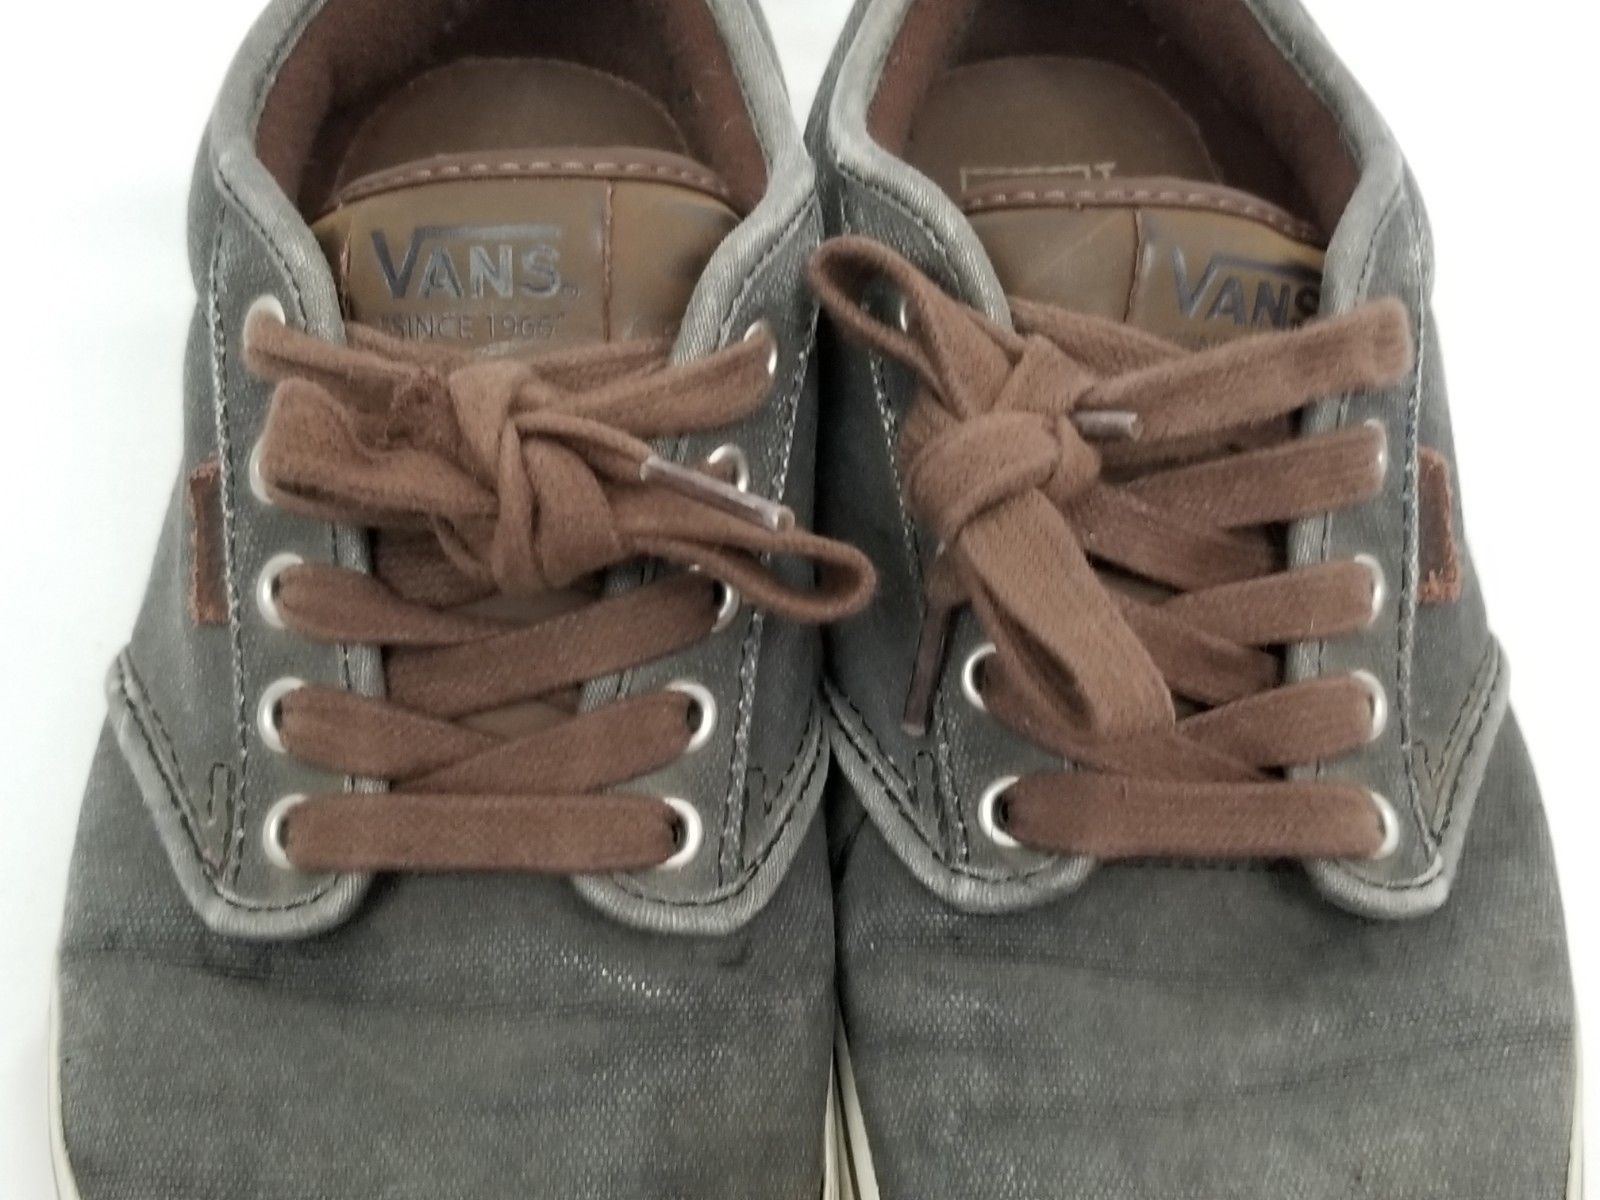 Mens Size 10 Gray Brown Vans Sneakers Shoes Lace Up 721356 image 3